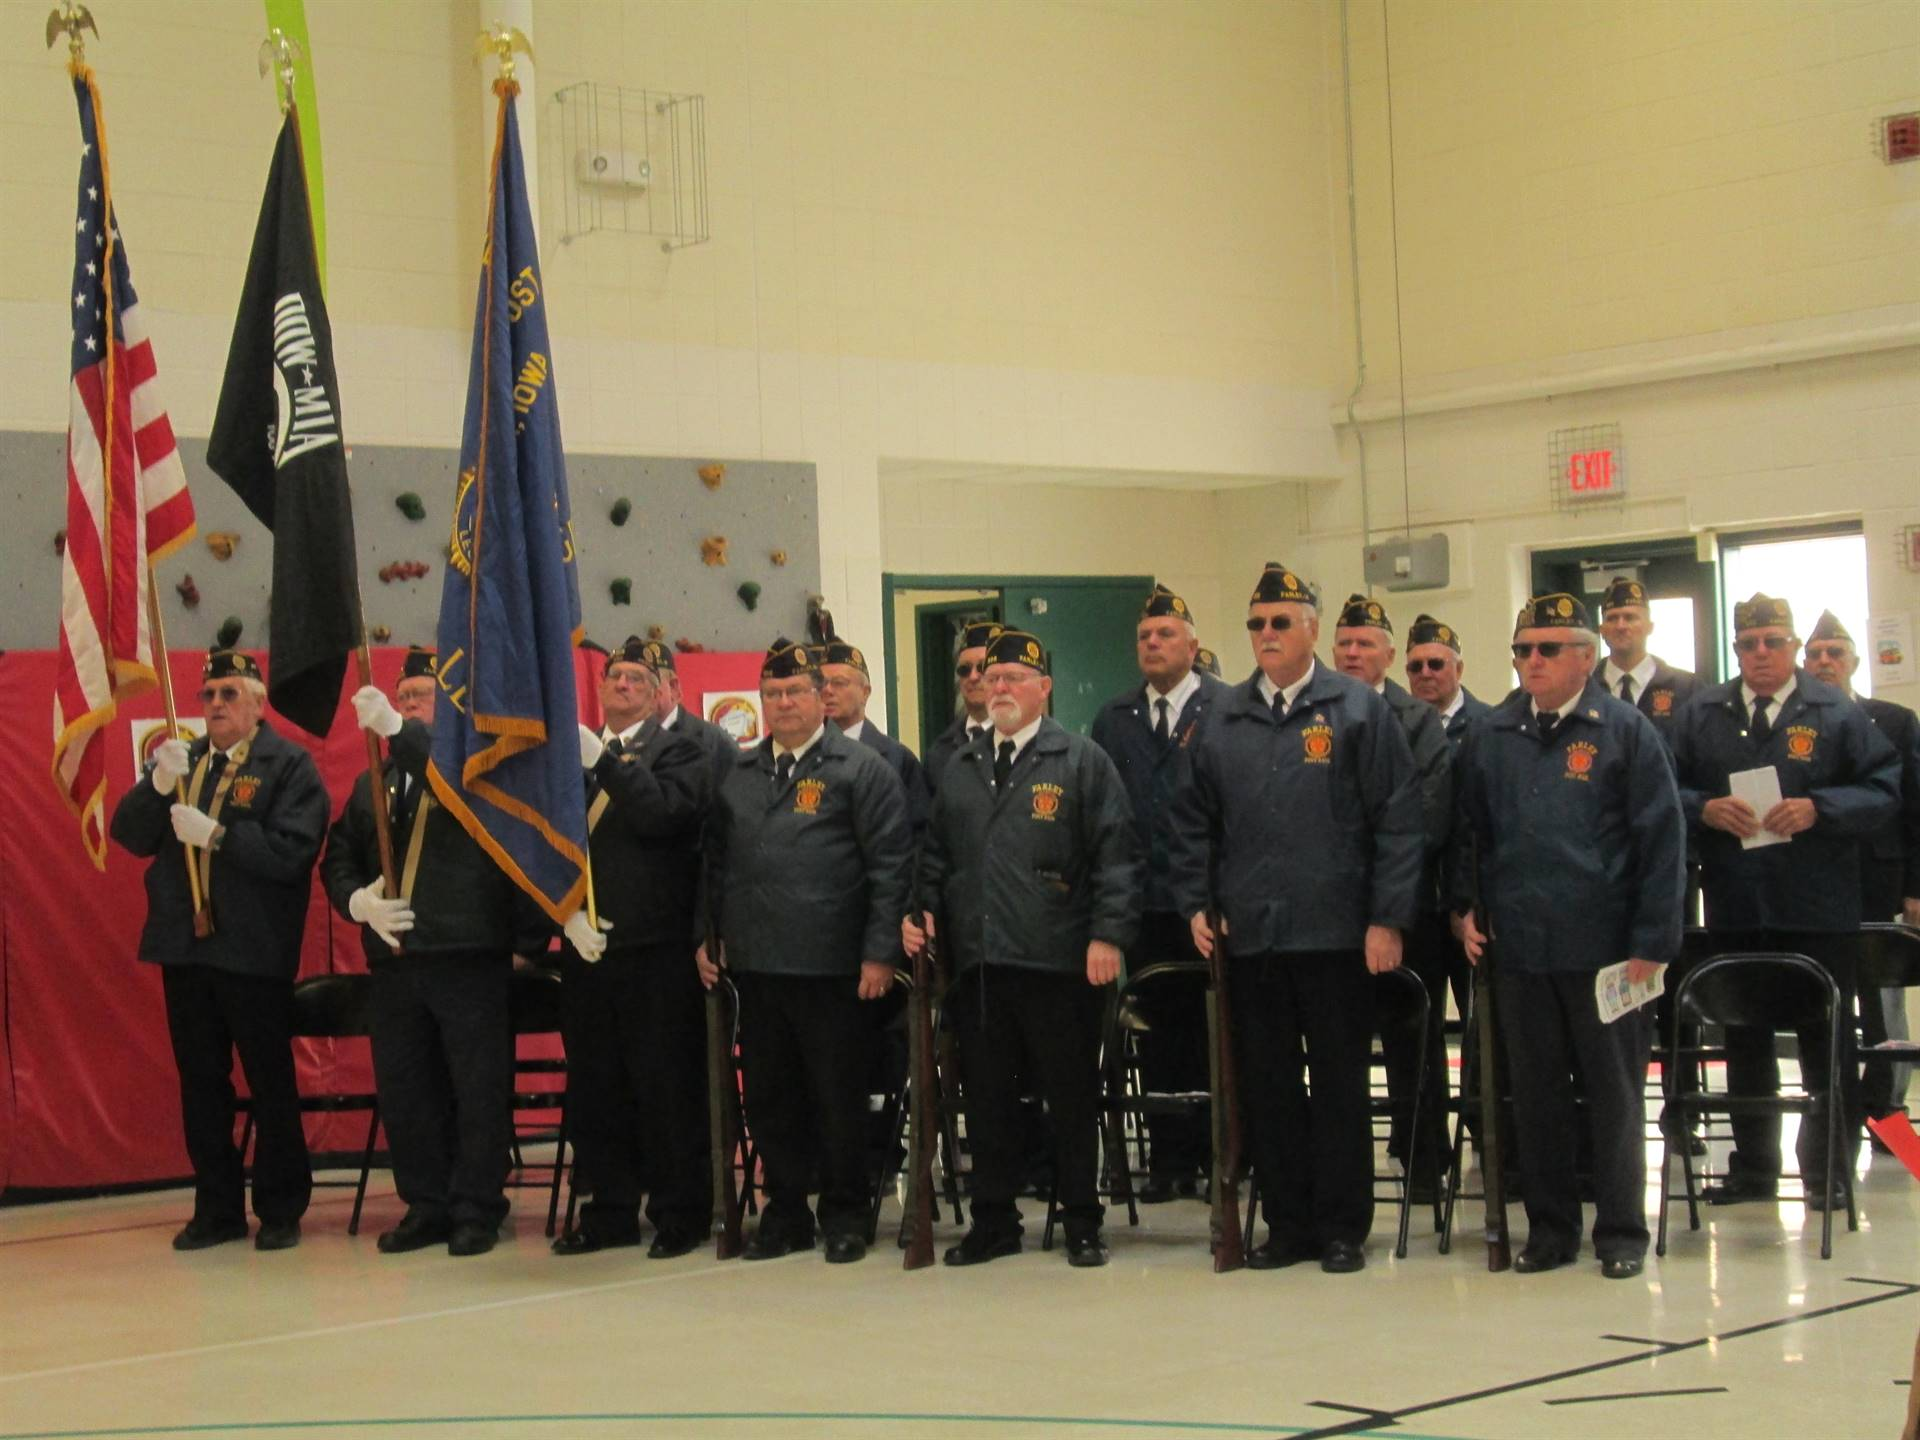 Veterans at Assembly